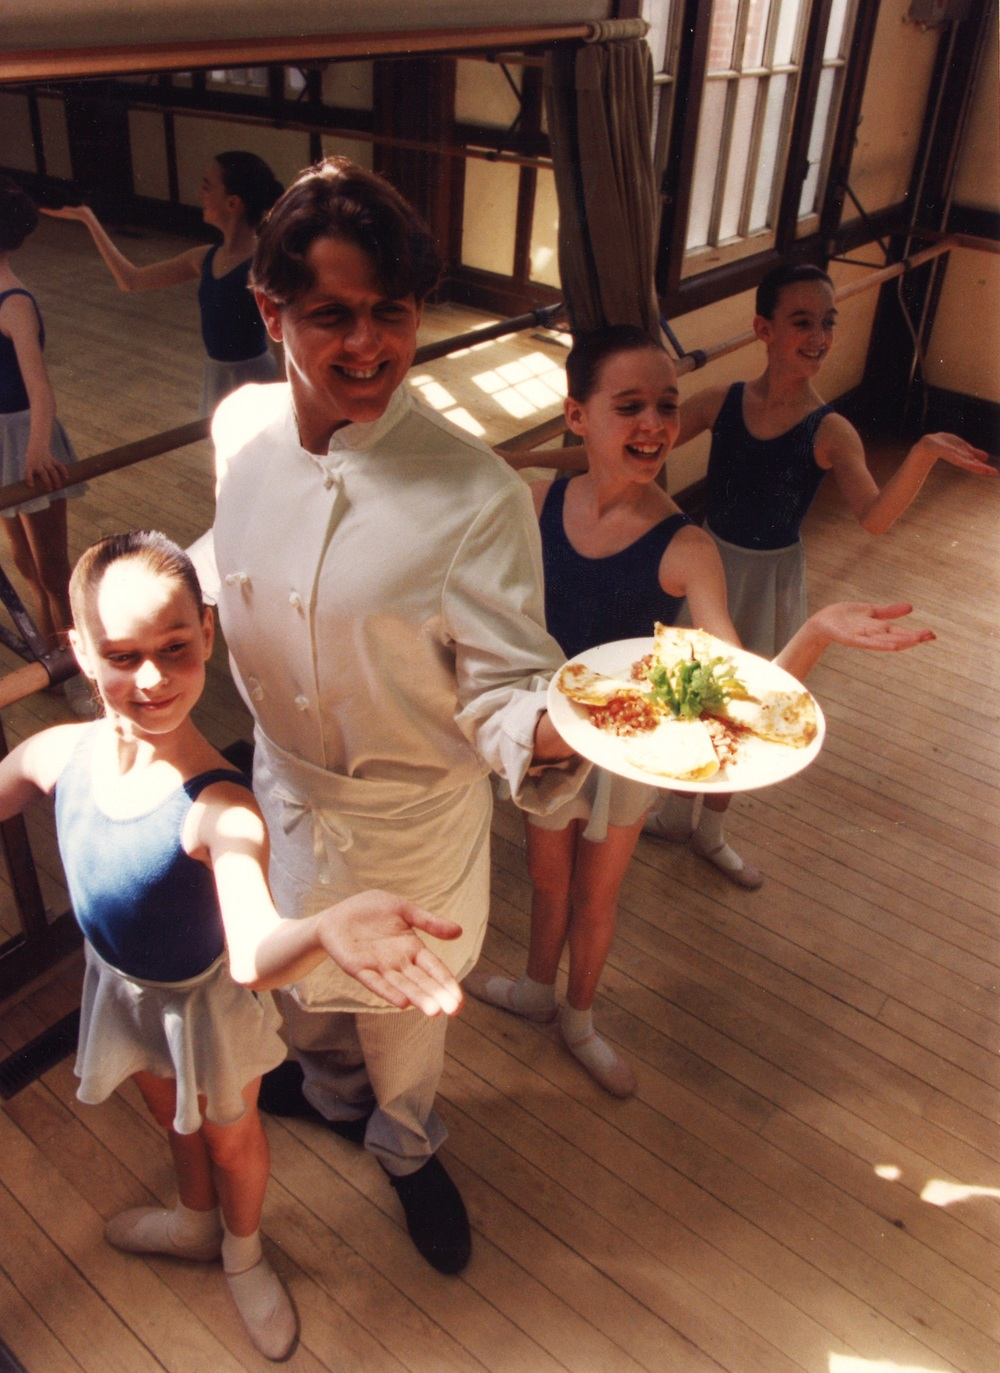 In 1993, then Chef Chris Zielinski demonstrates his culinary creations for NBS students. Photographed by Ian MacDonald for the Toronto Sun.